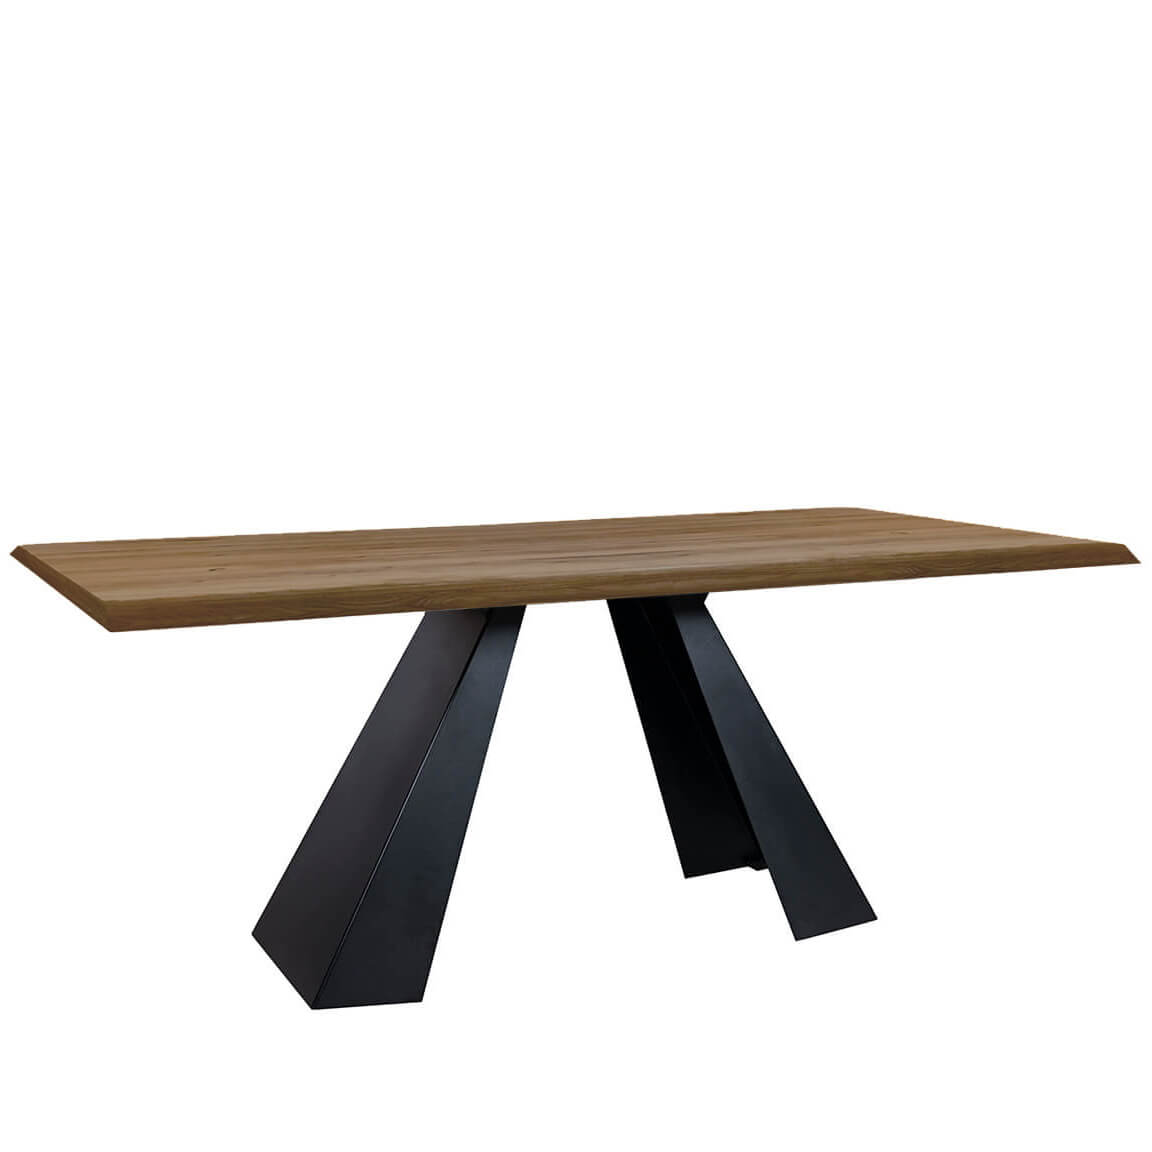 A Dining table Walnut